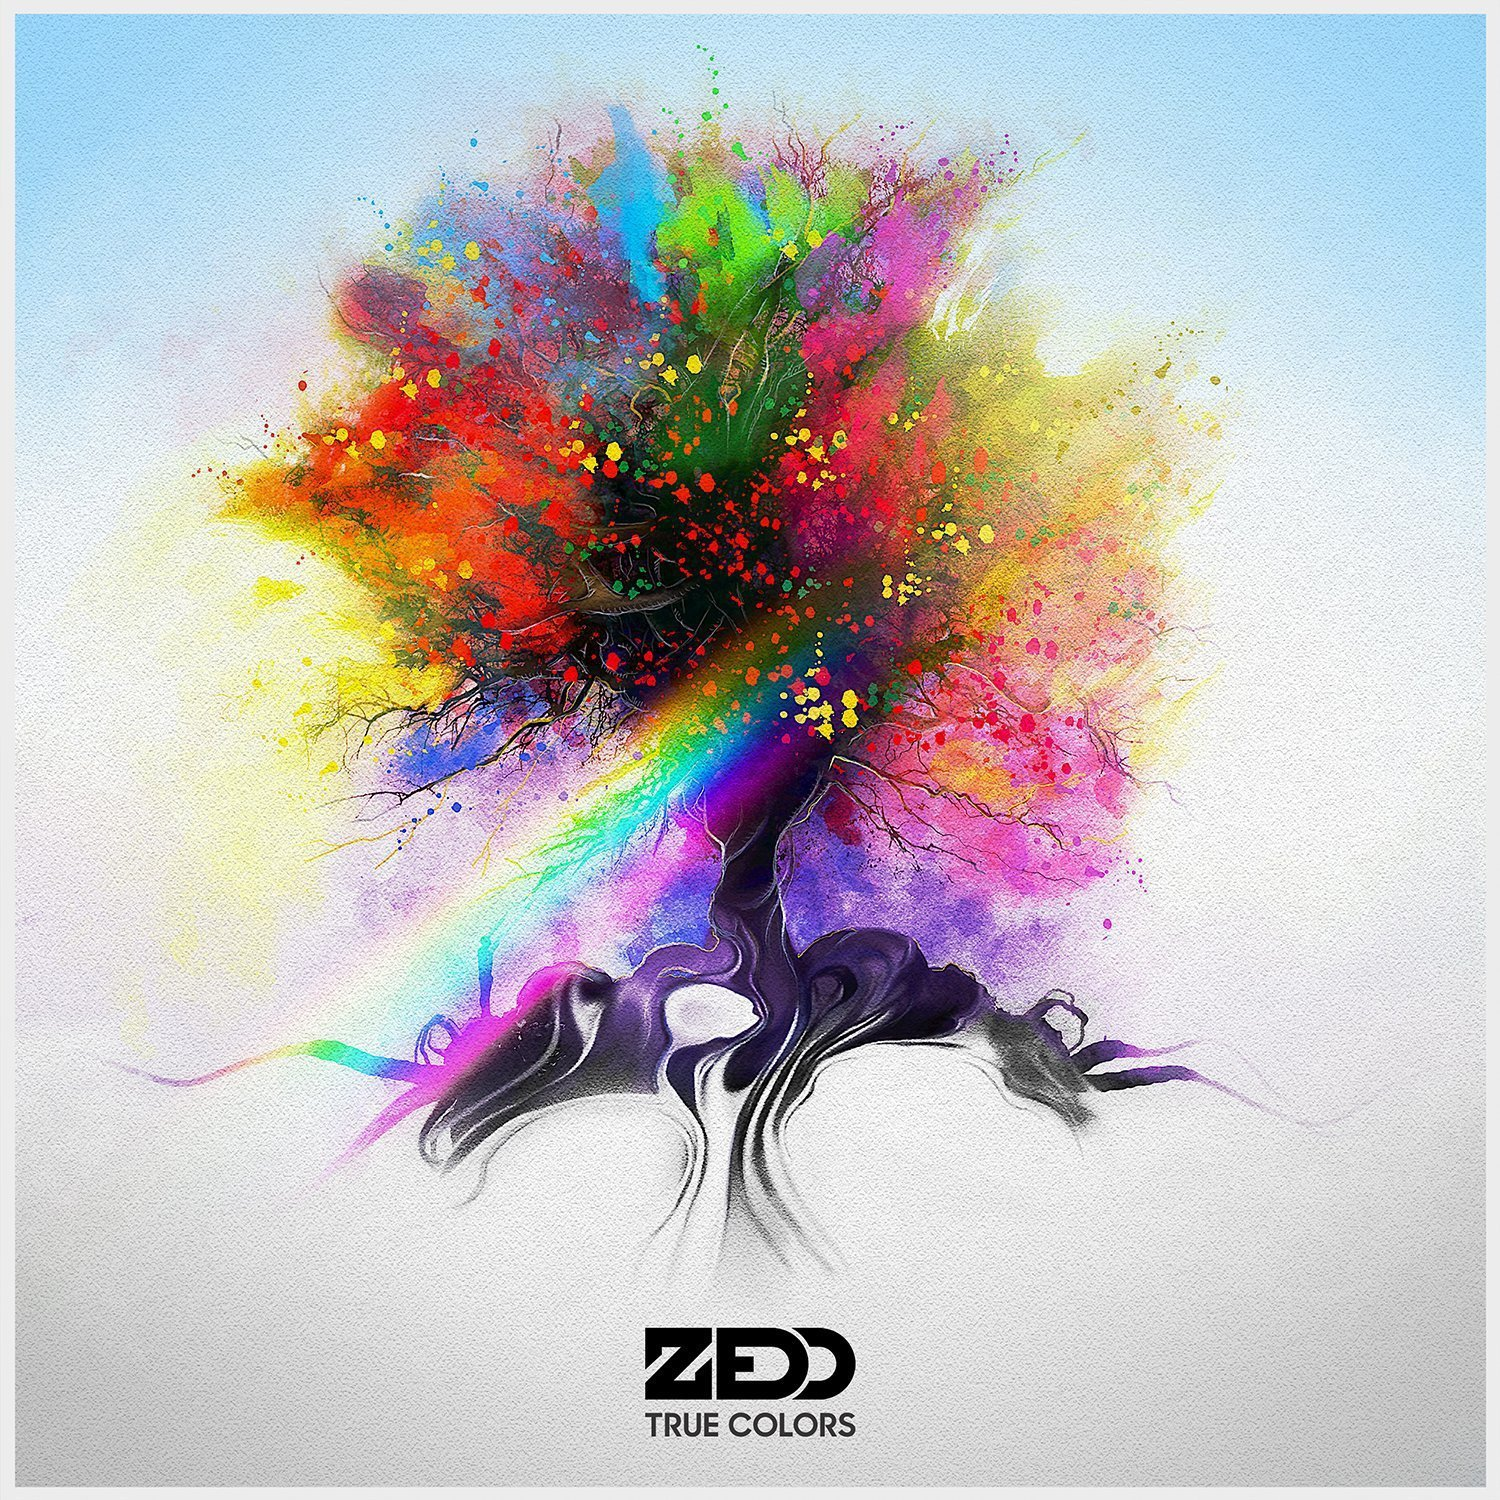 Zedd Delivers Pleasant Sophomore Album With 'True Colors'